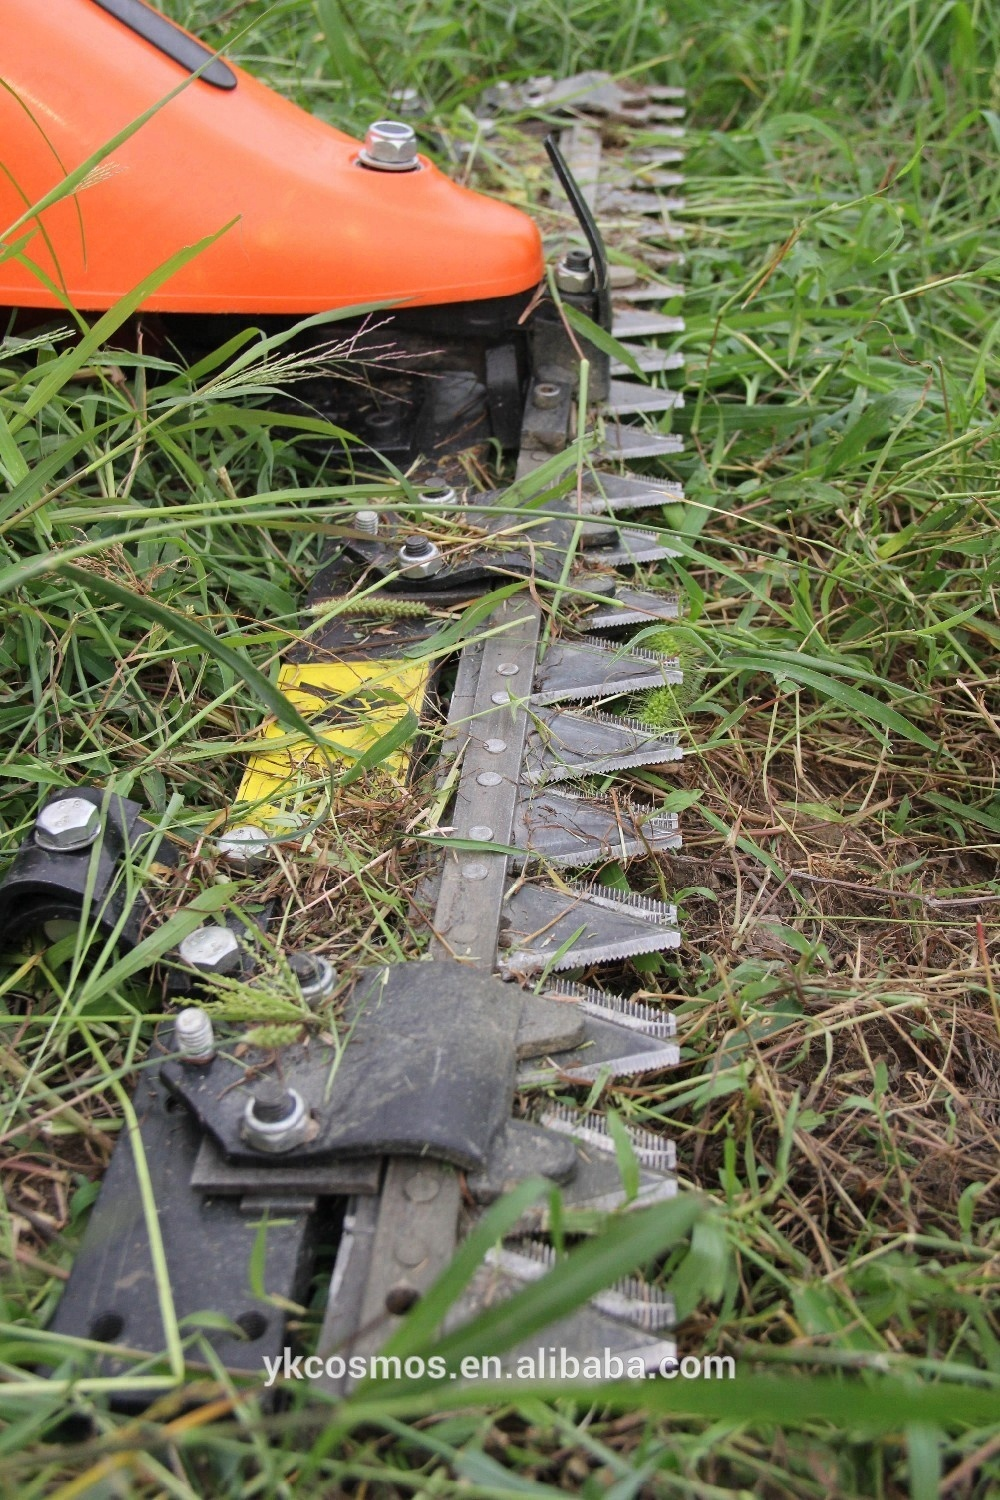 China Scythe Mower, China Scythe Mower Manufacturers and Suppliers